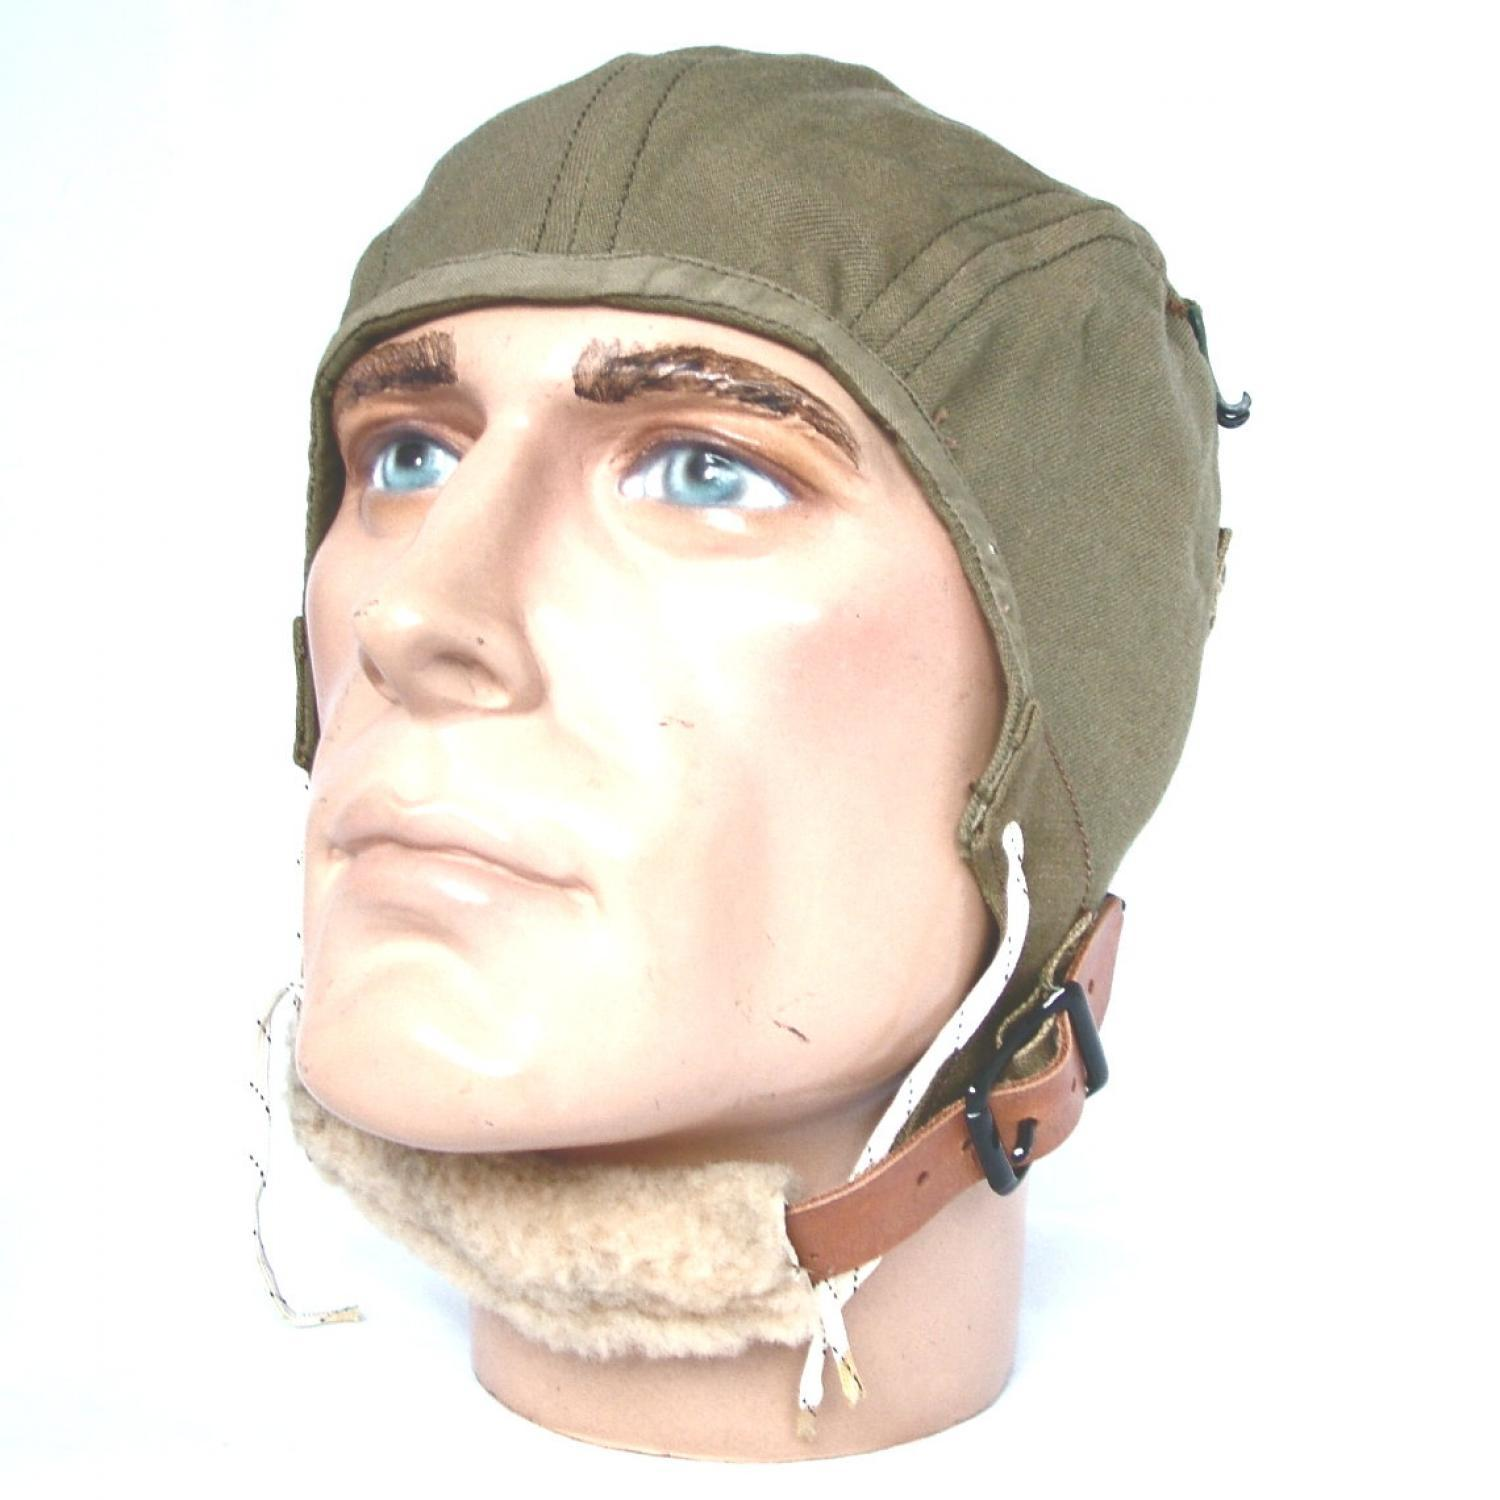 USAAF A-8 Flying Helmet